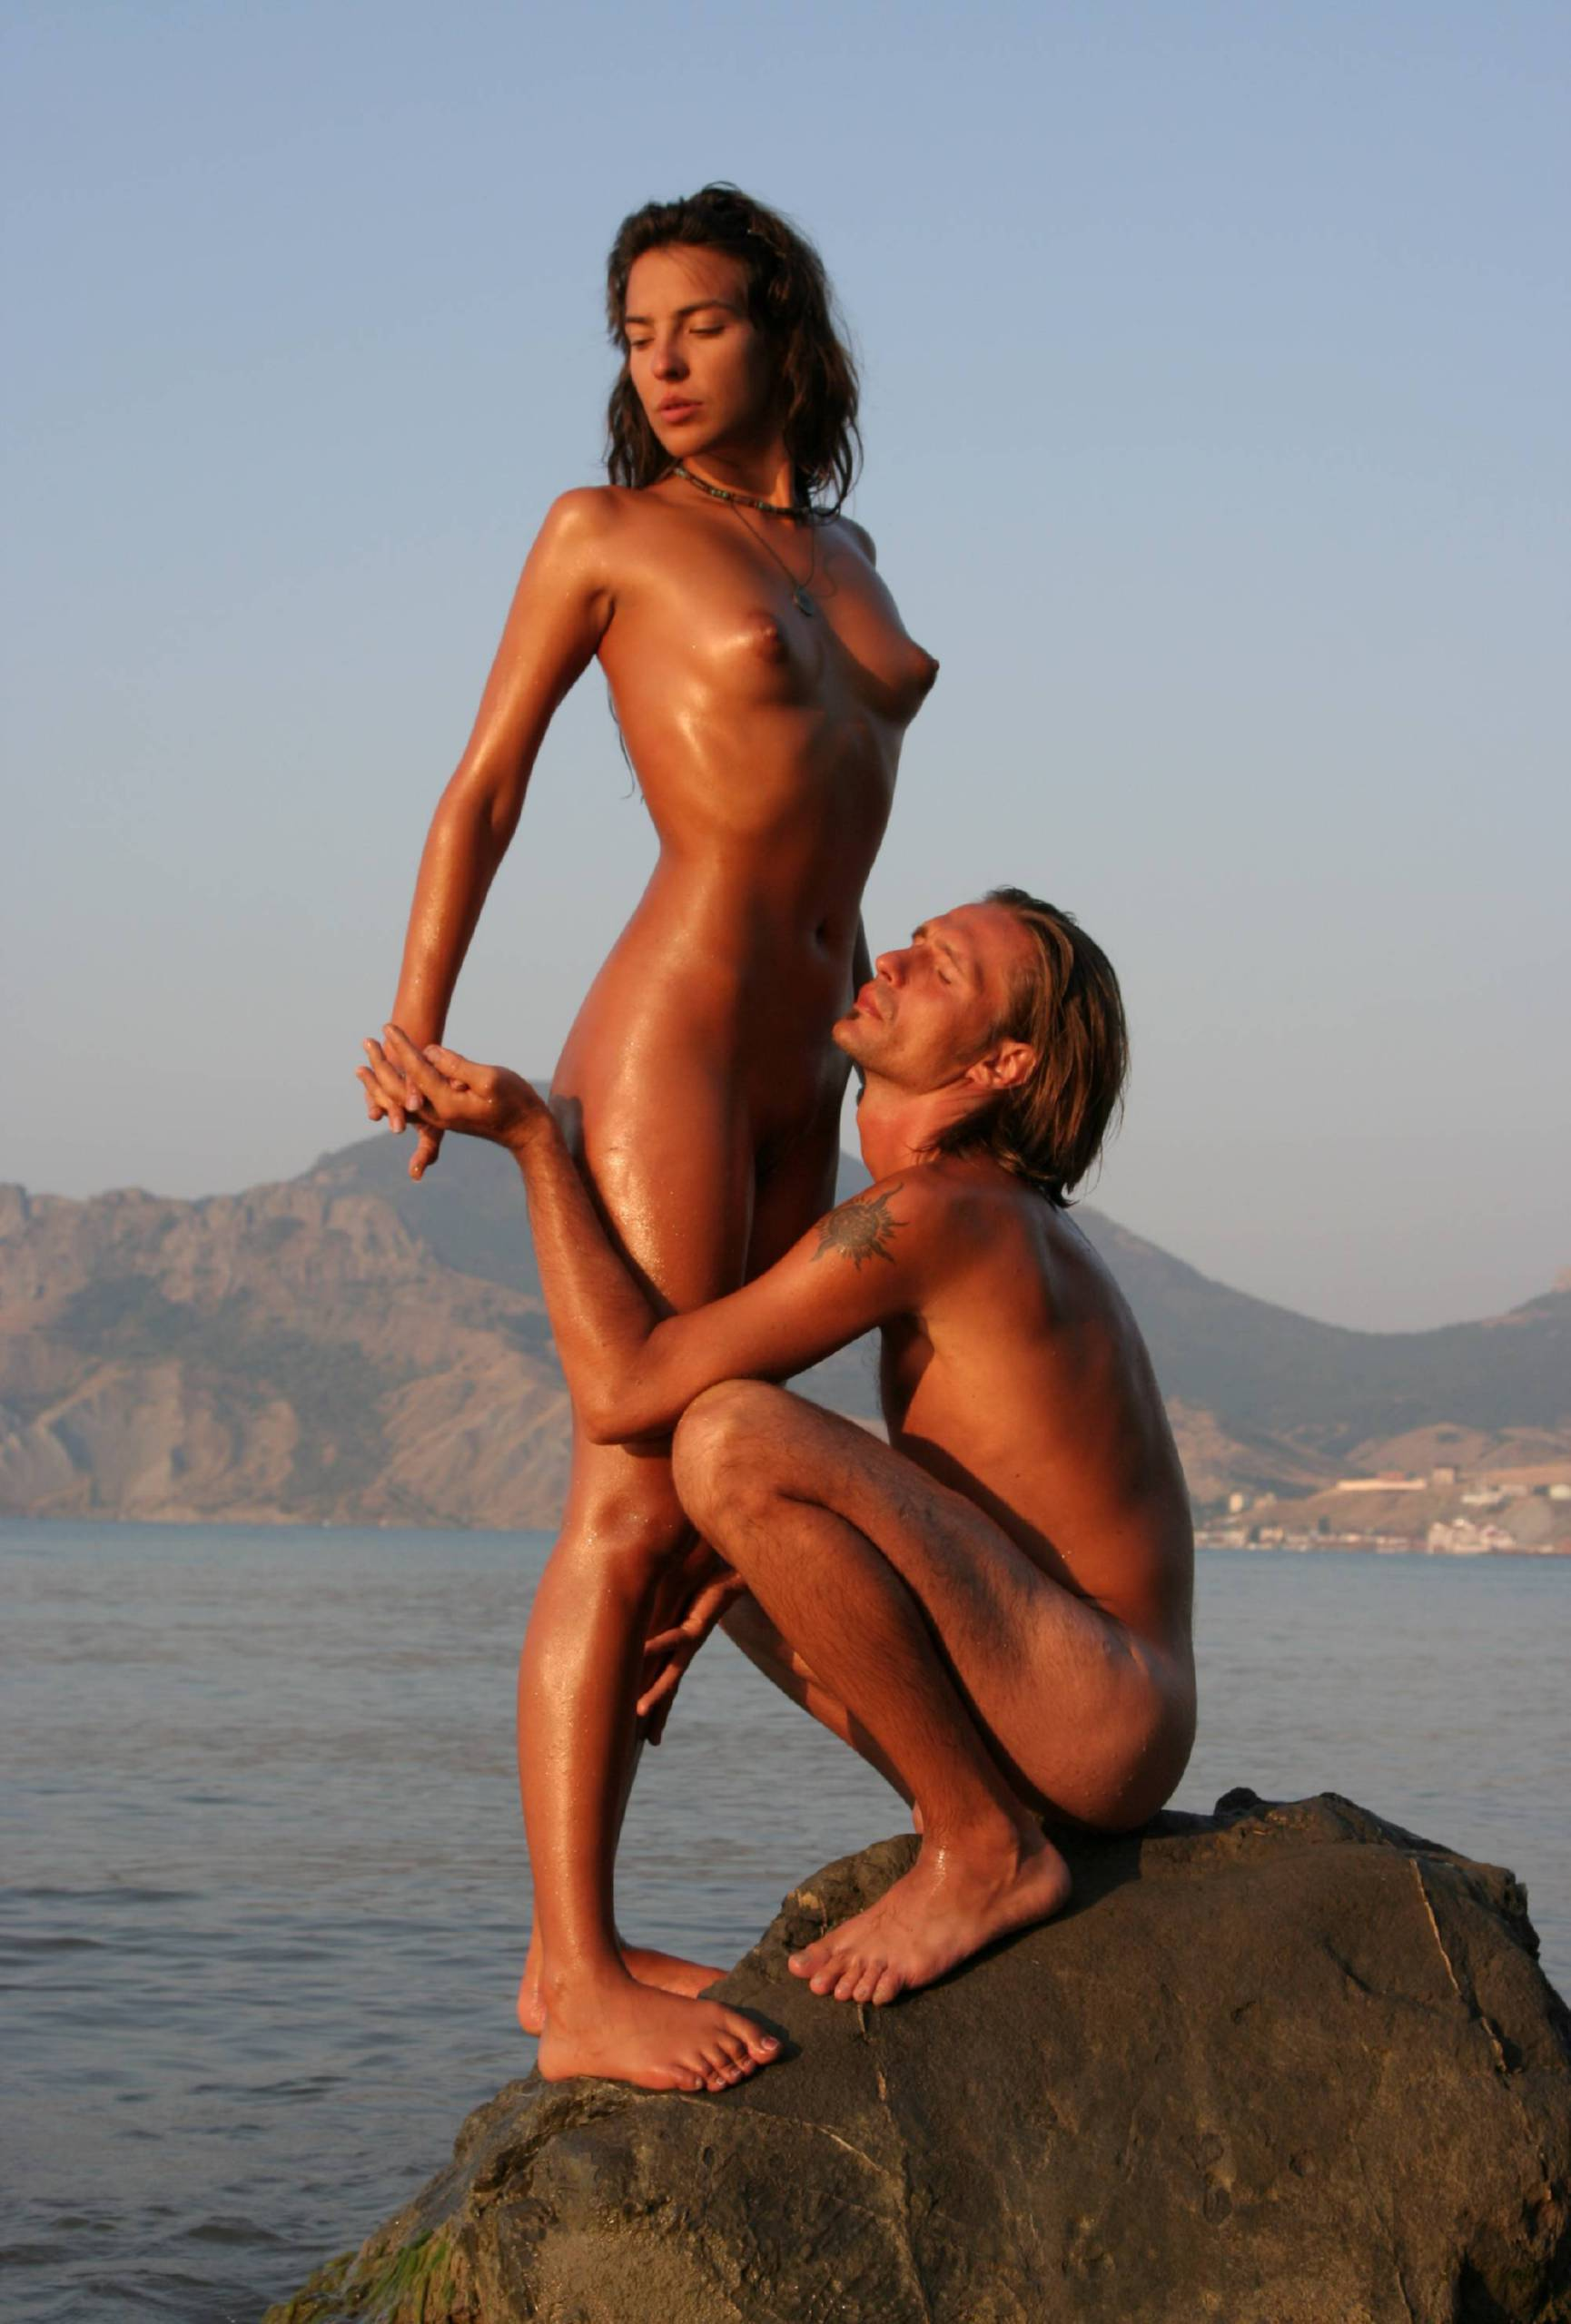 Single to Naturist Couples - 2